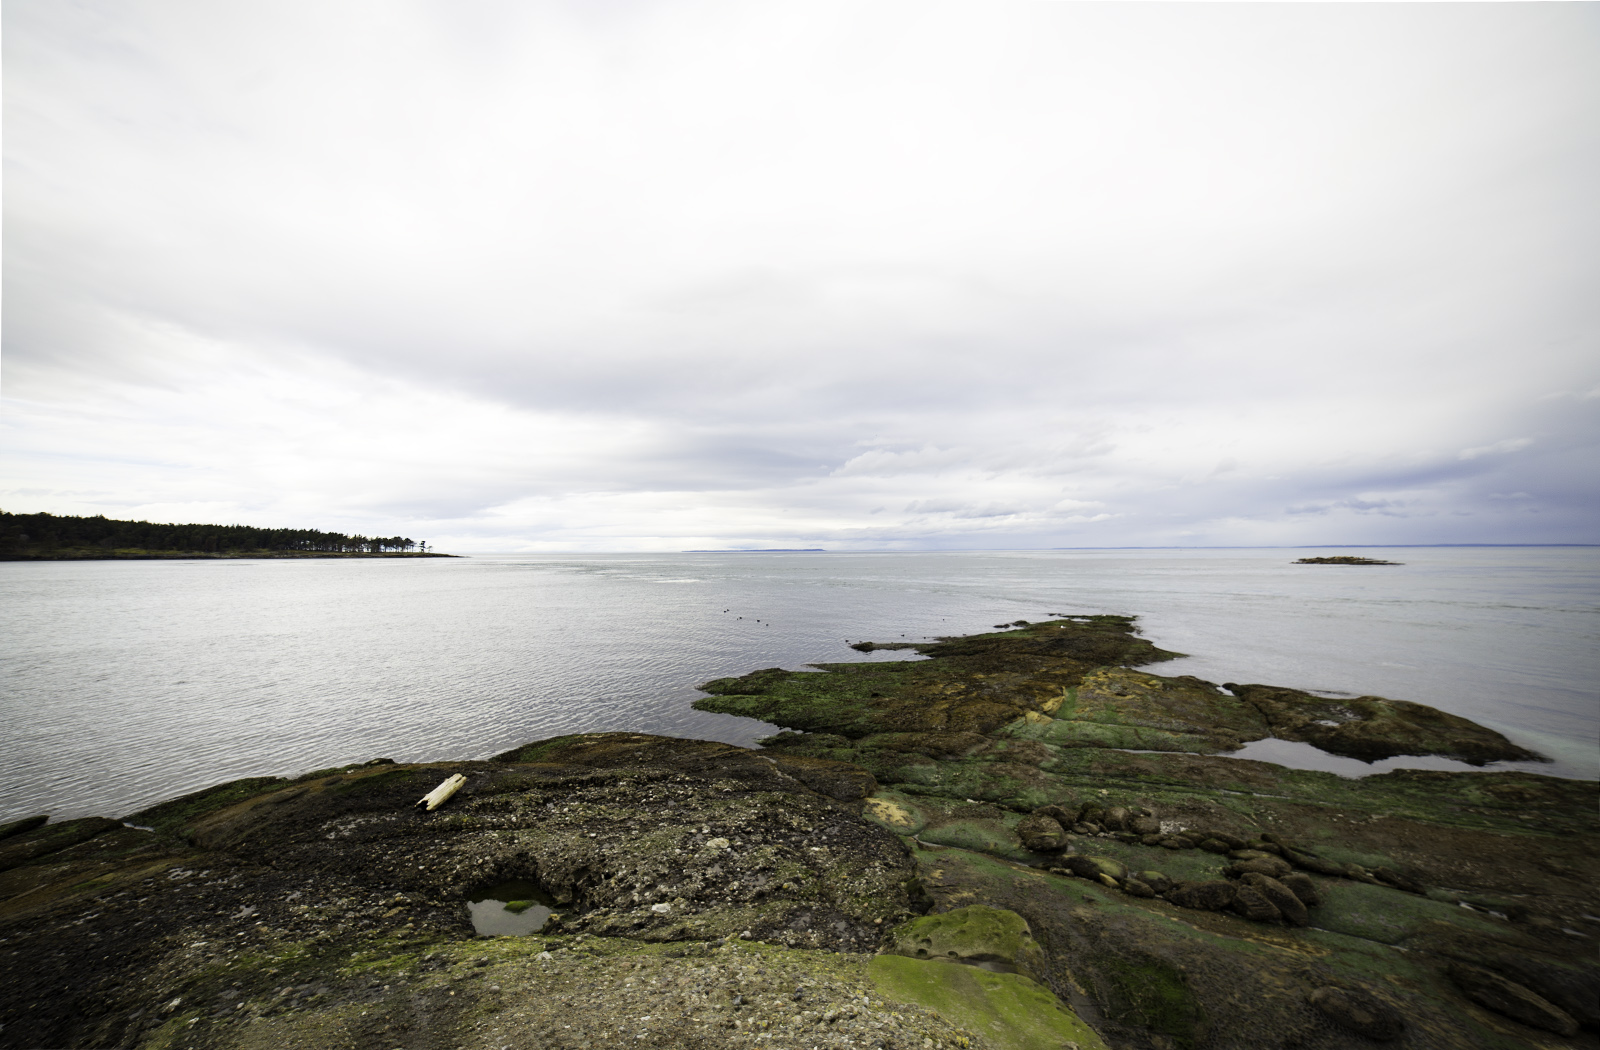 East Point, Saturna Island, at low tide. Photo © Andrée Fredette